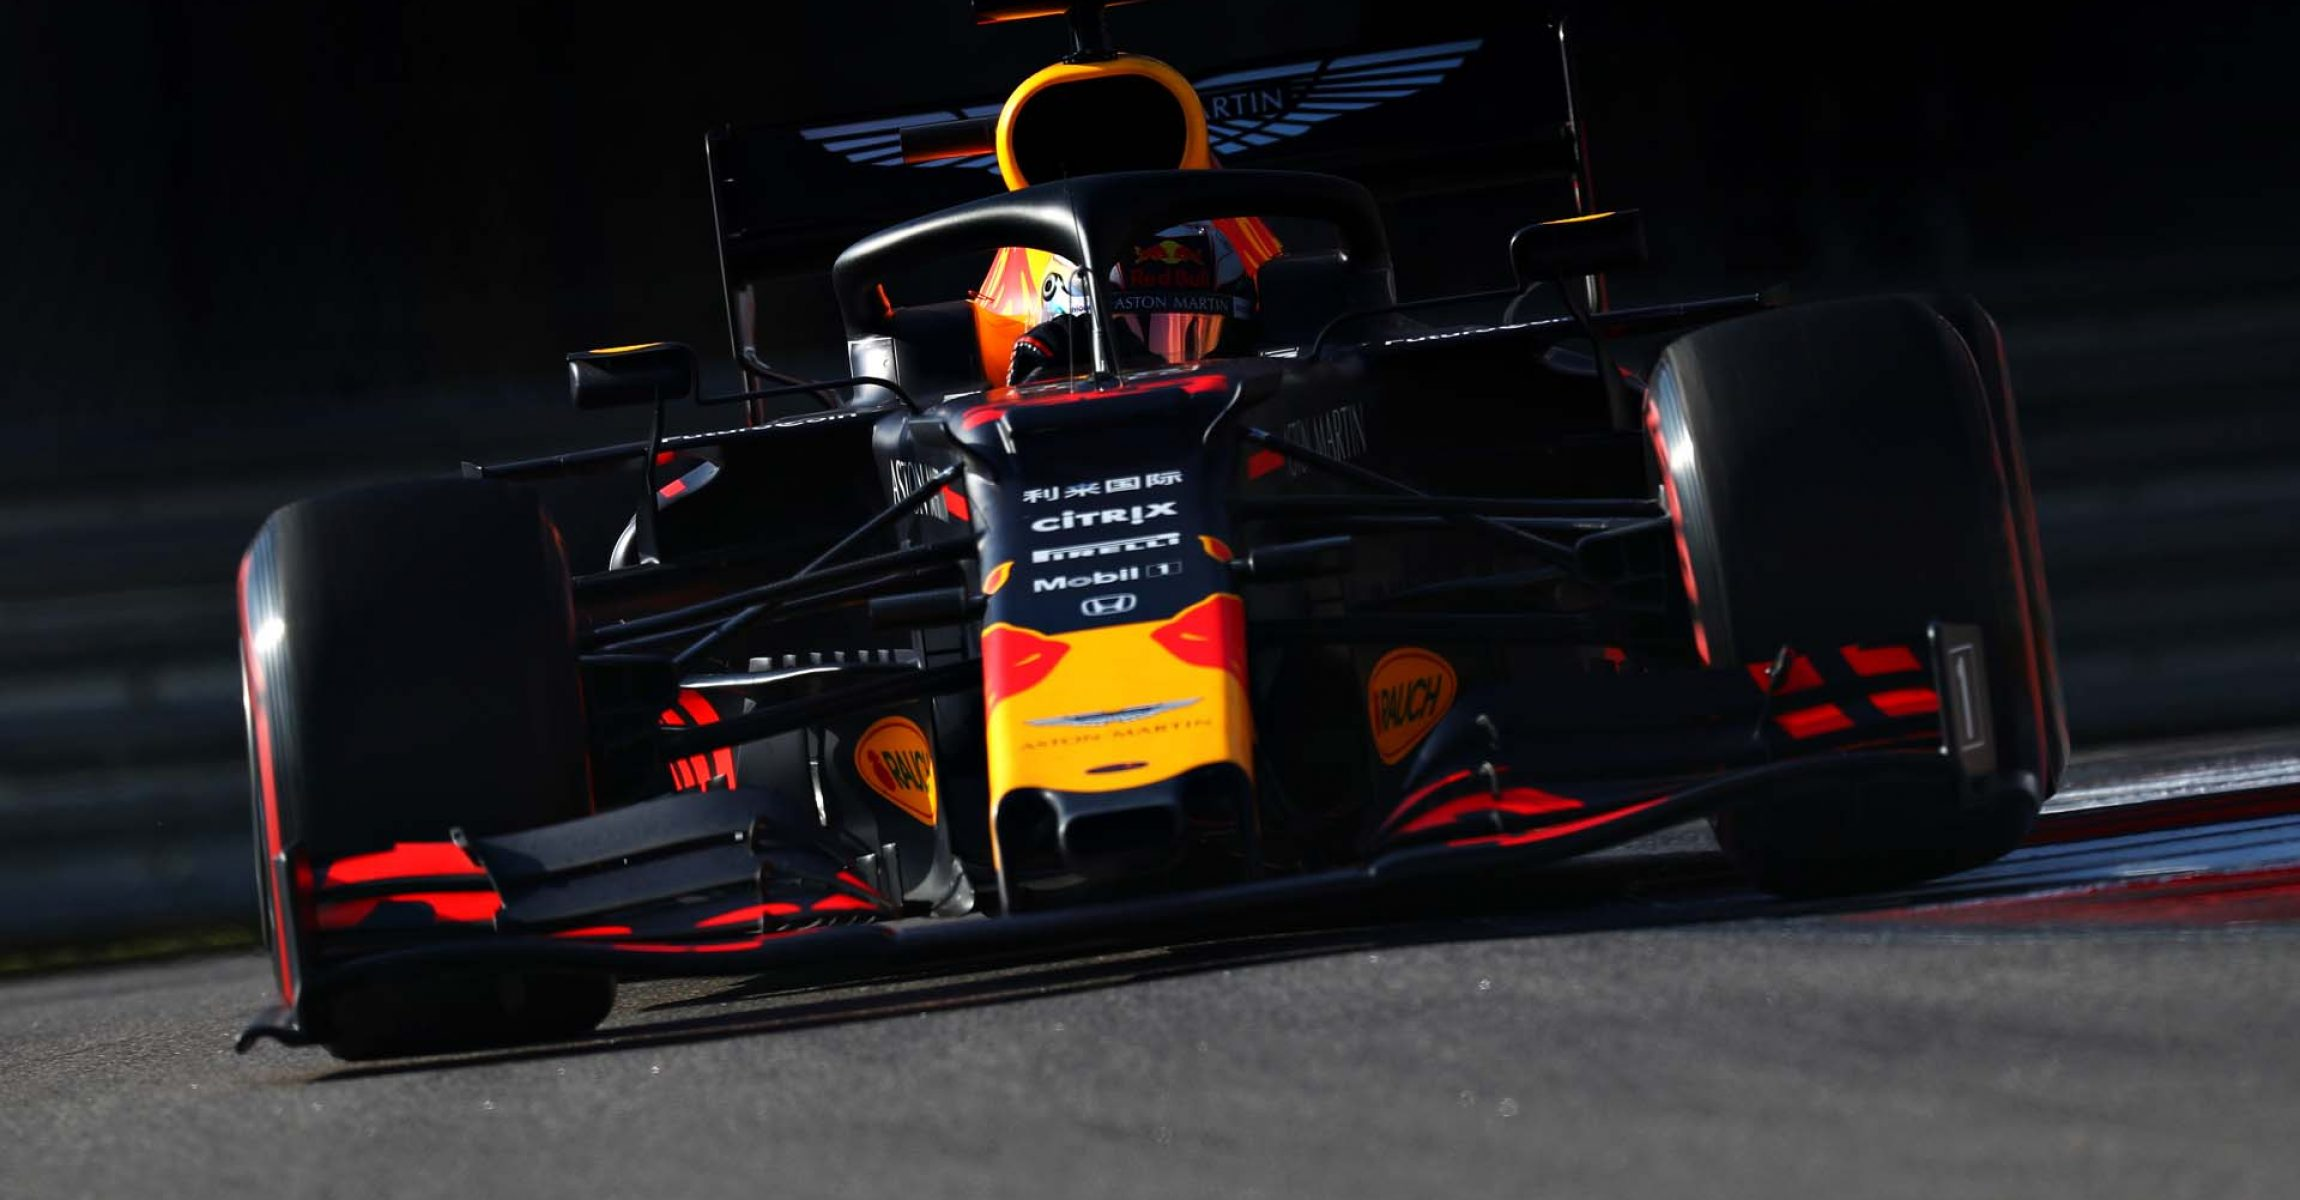 SOCHI, RUSSIA - SEPTEMBER 28: Max Verstappen of the Netherlands driving the (33) Aston Martin Red Bull Racing RB15 on track during qualifying for the F1 Grand Prix of Russia at Sochi Autodrom on September 28, 2019 in Sochi, Russia. (Photo by Mark Thompson/Getty Images) // Getty Images / Red Bull Content Pool  // AP-21Q85H5R52111 // Usage for editorial use only //